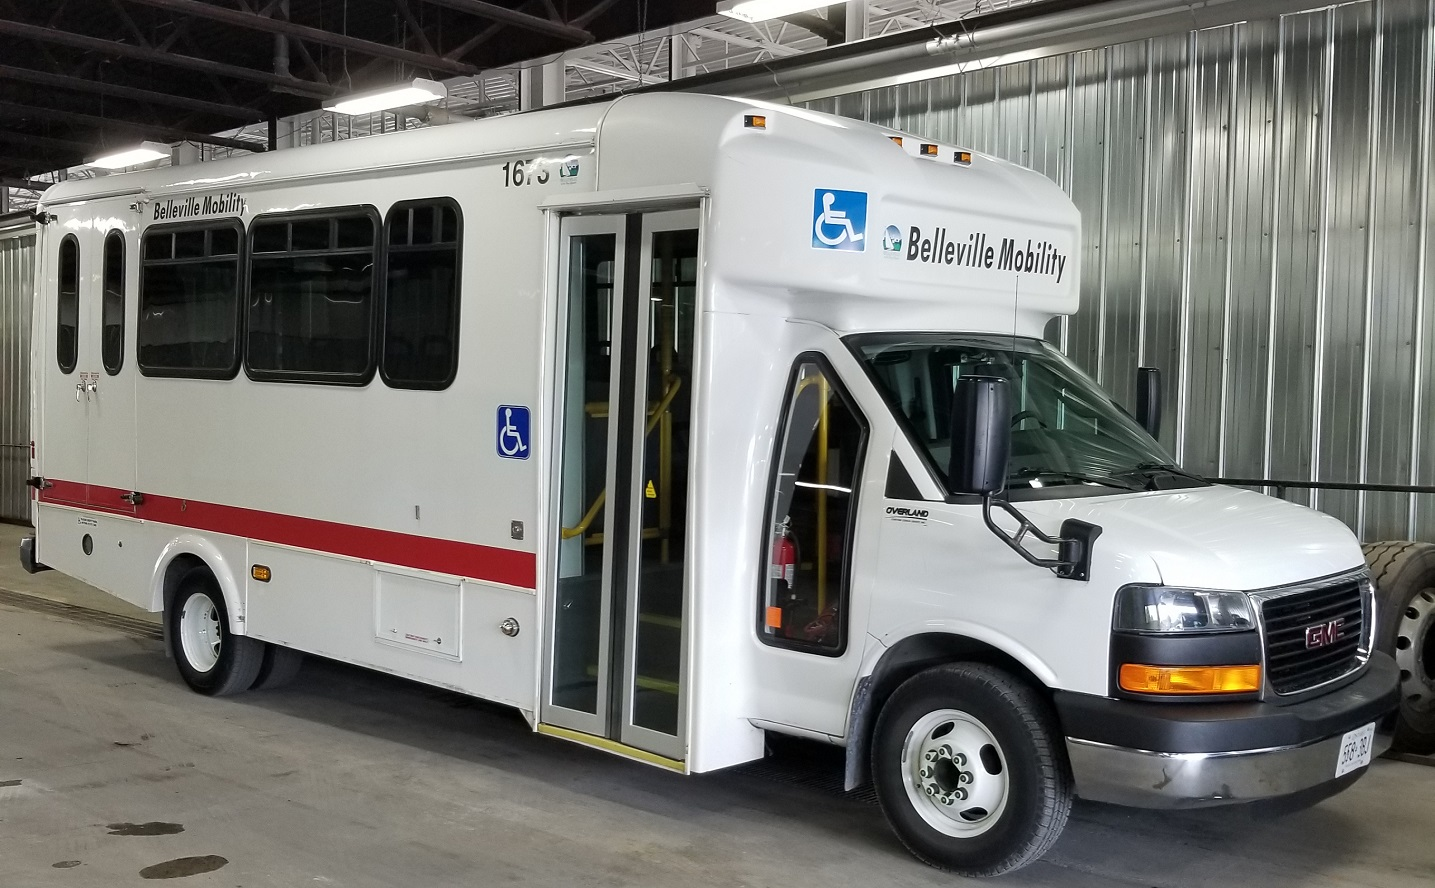 the mobility bus is a specialized transit vehicle that features standard front door boarding and rear boarding lift option. They are shorter than a conventional transit bus.